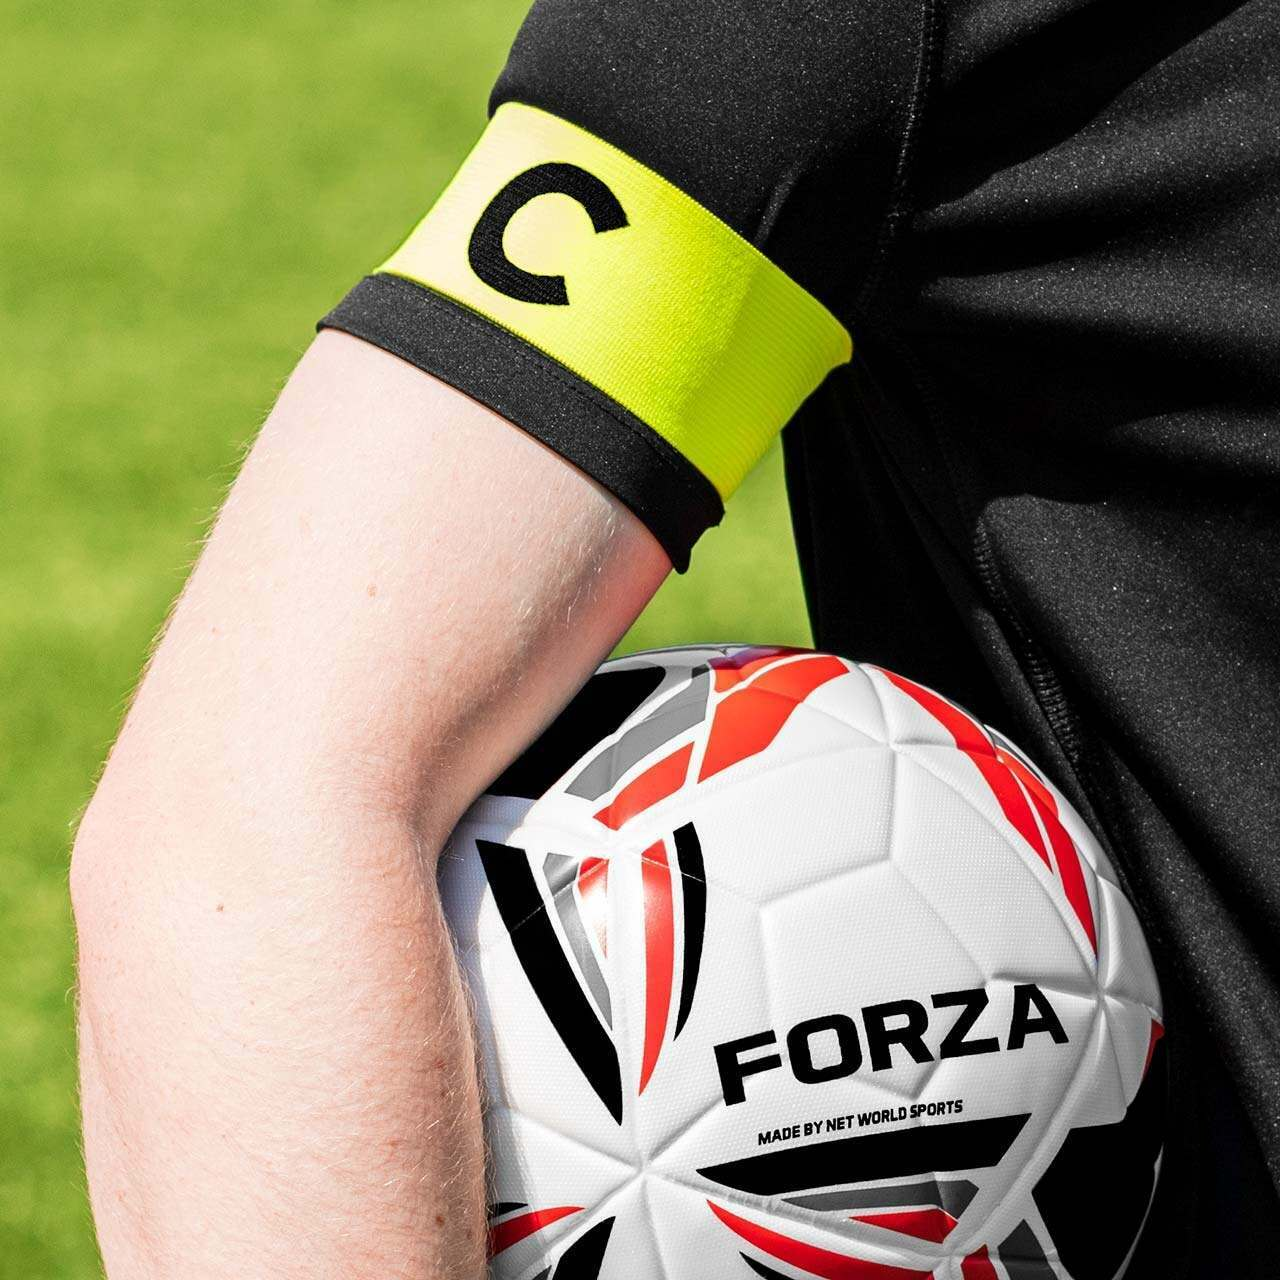 FORZA Pro Football Captains Armband